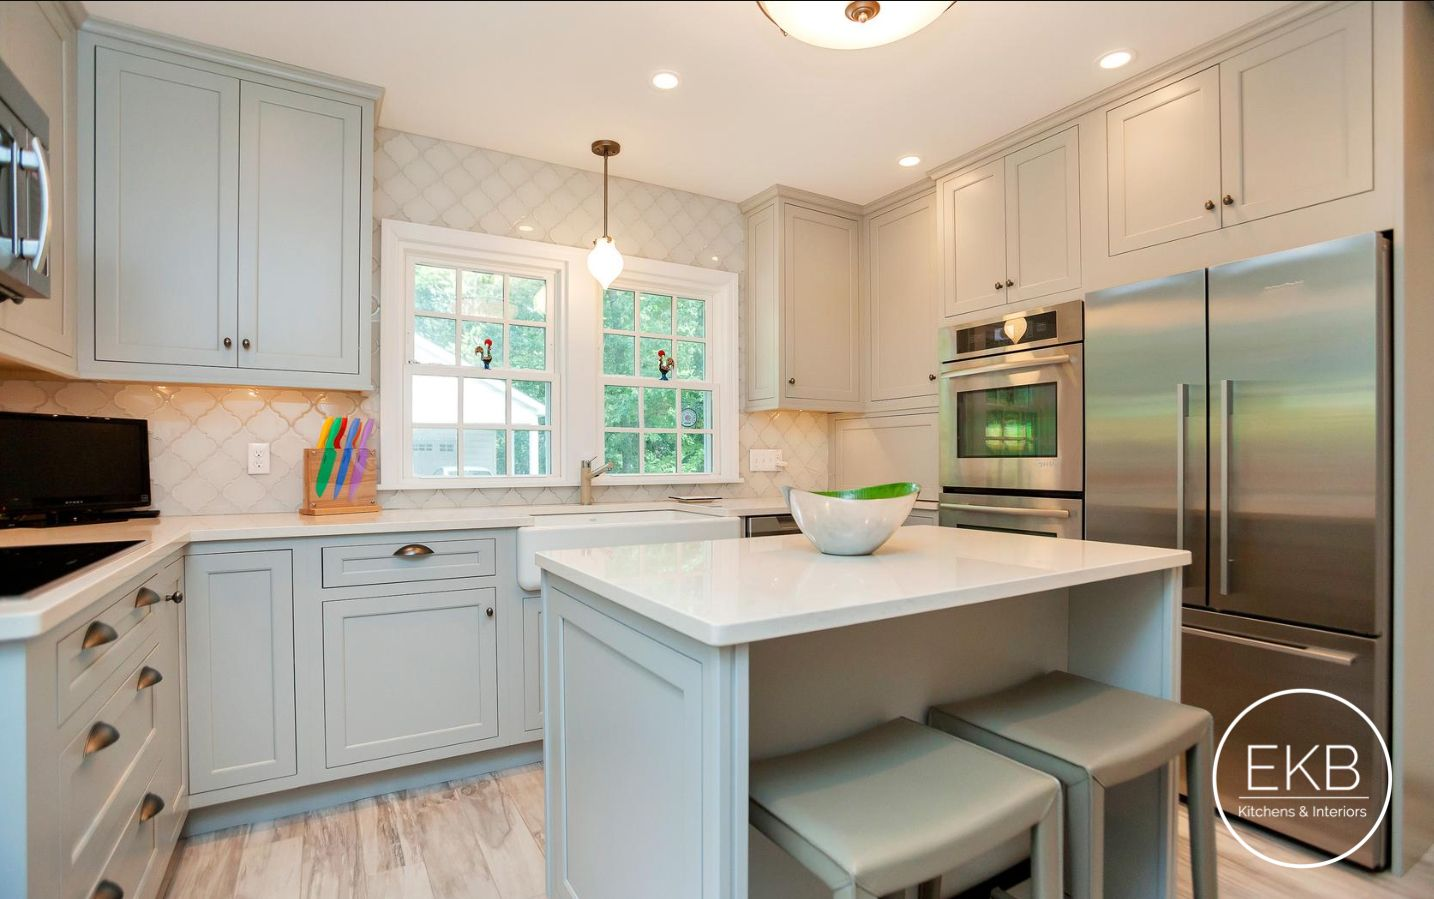 Benjamin Moore Silver Mist Inset Cabinets With Vortium Silestone Countertops In 2020 Beige Kitchen Installing Kitchen Cabinets Kitchen Design